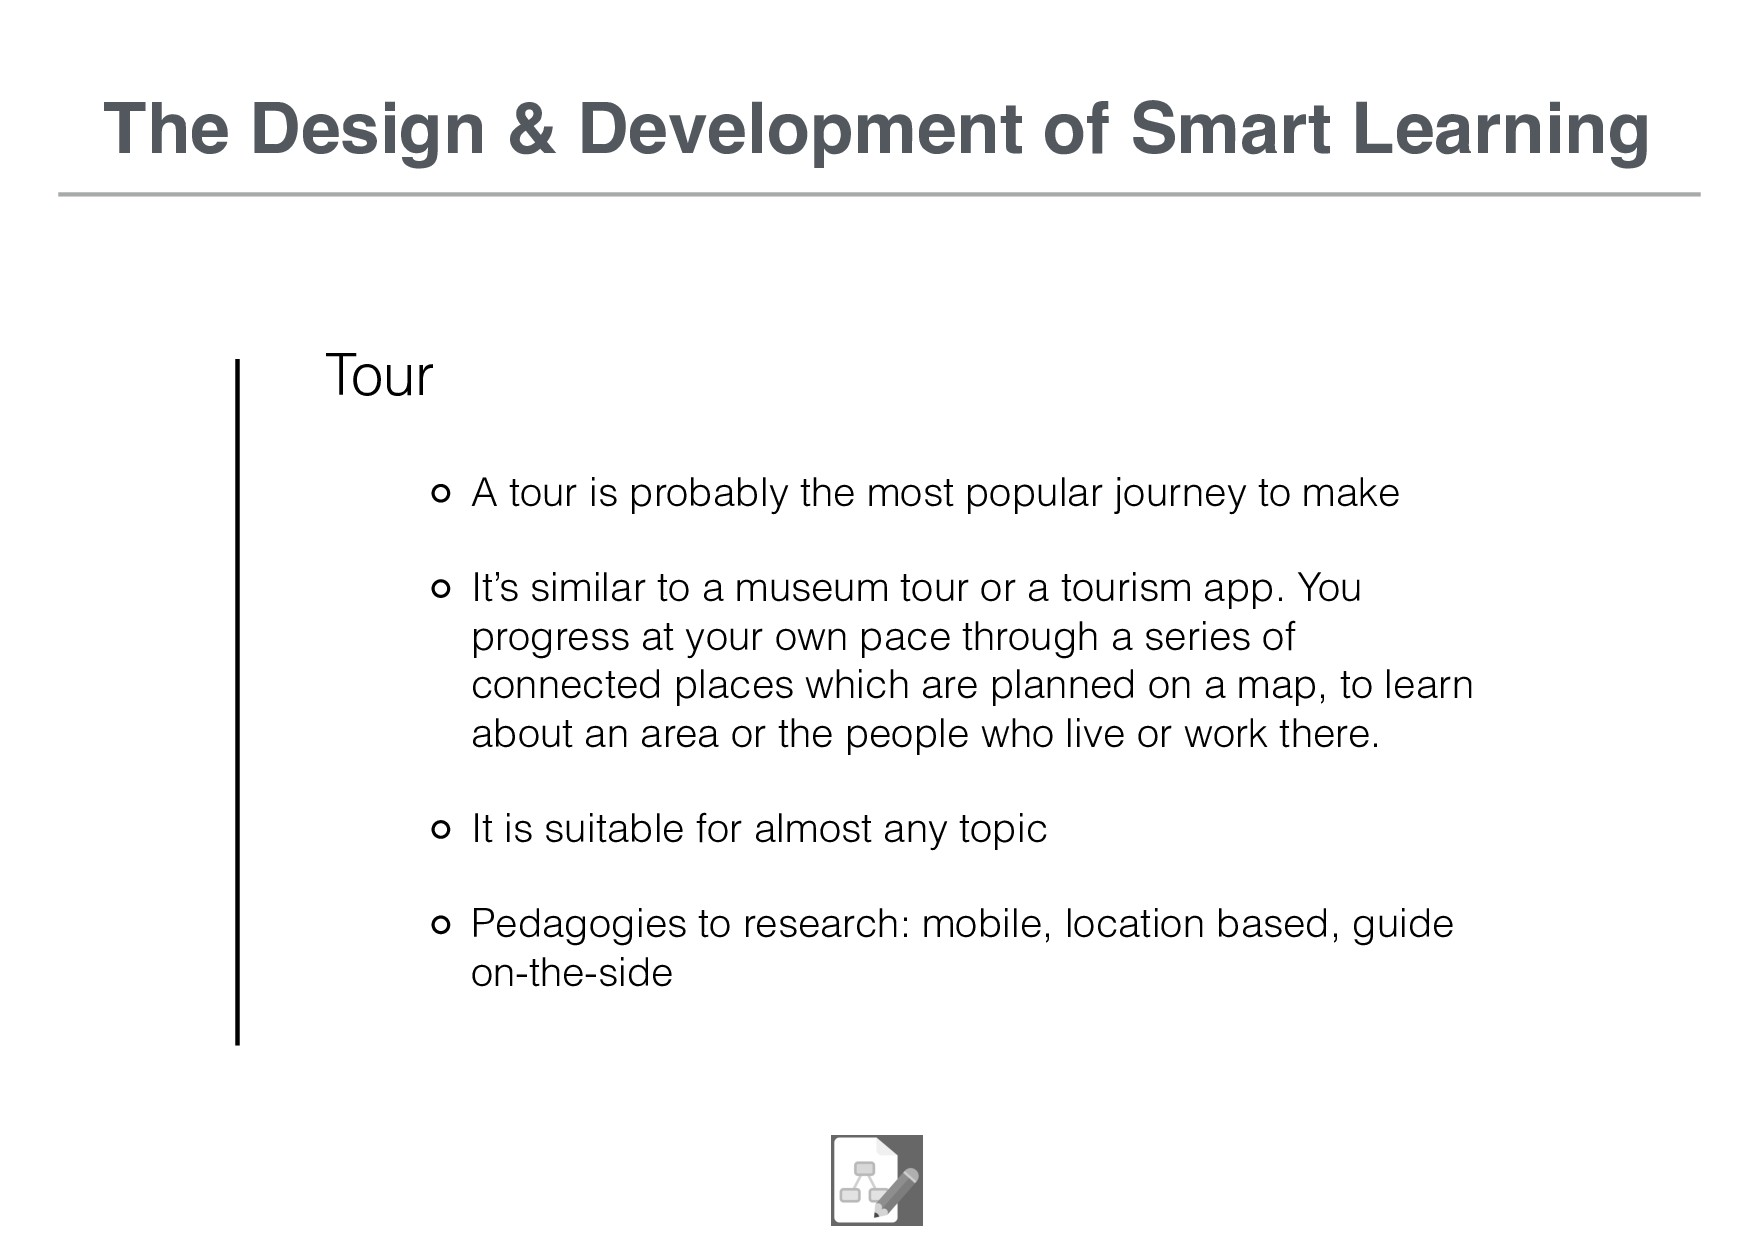 The Design & Development of Smart Learning Tour...